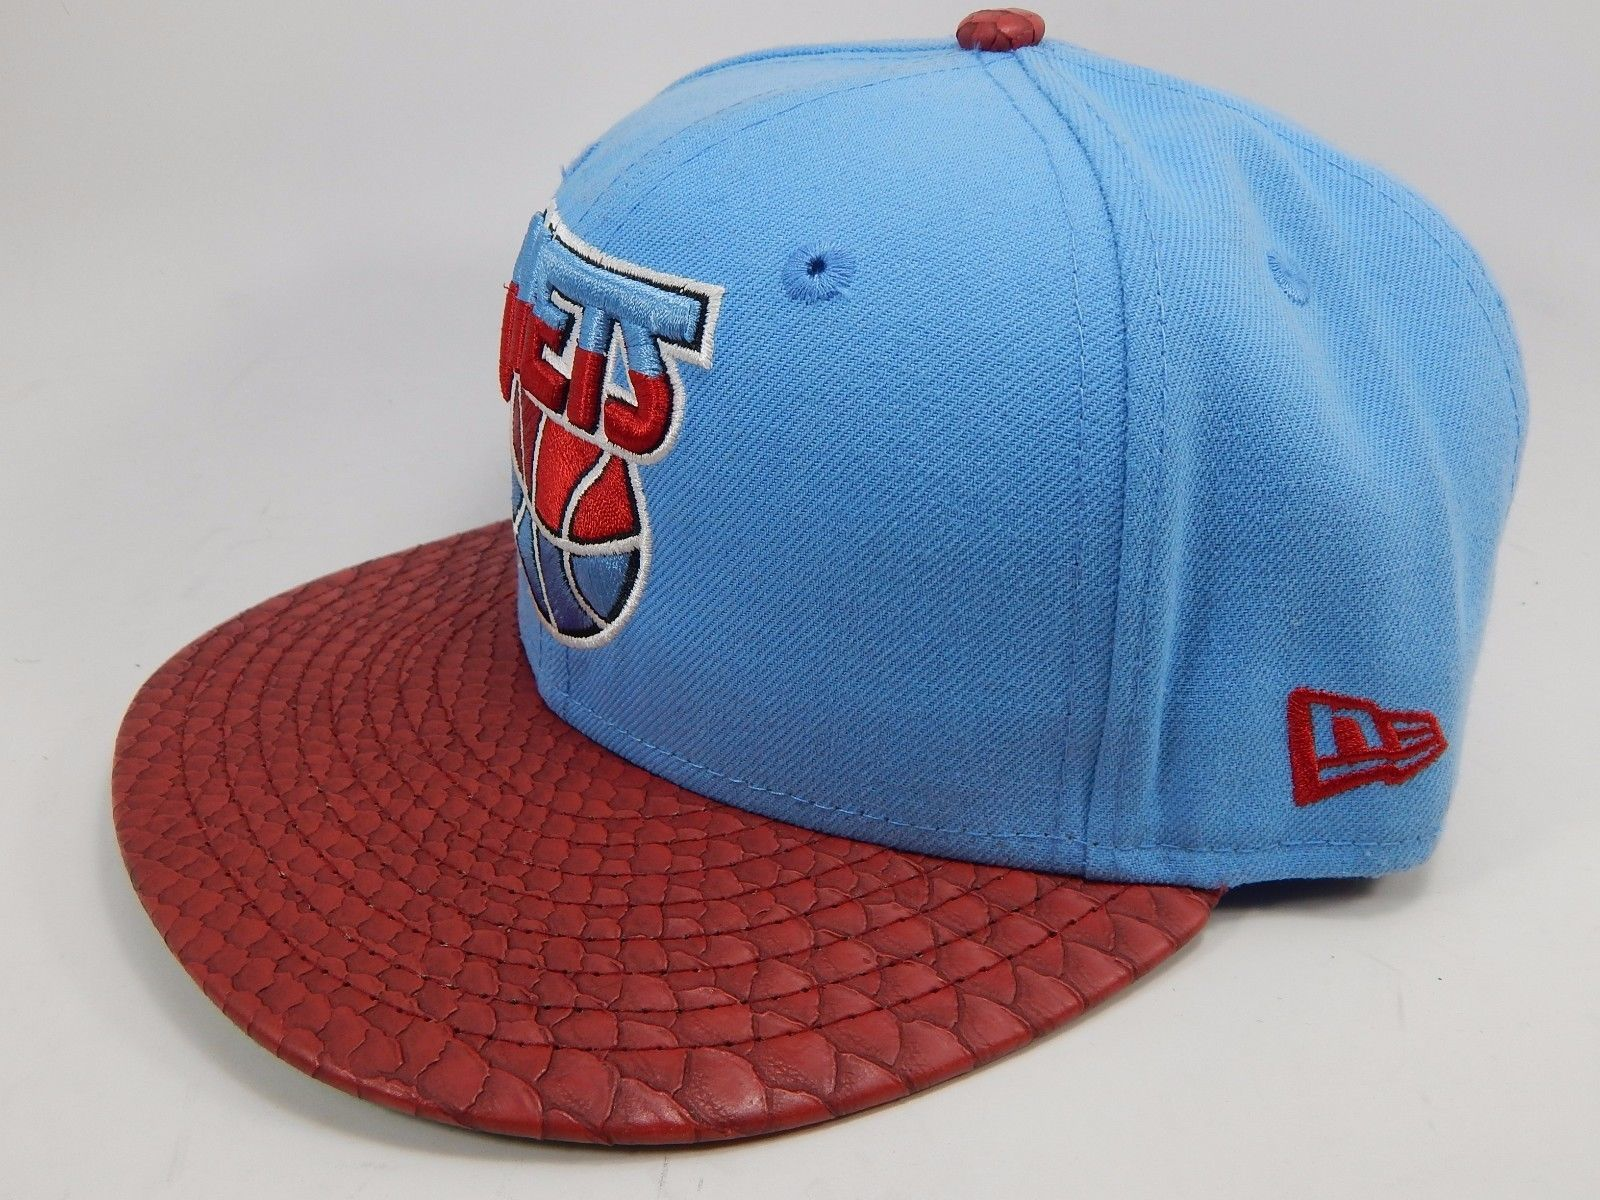 New Jersey Nets New Era Size 7 1/8 Fitted 59Fifty Official NBA Cap Hat Blue Red